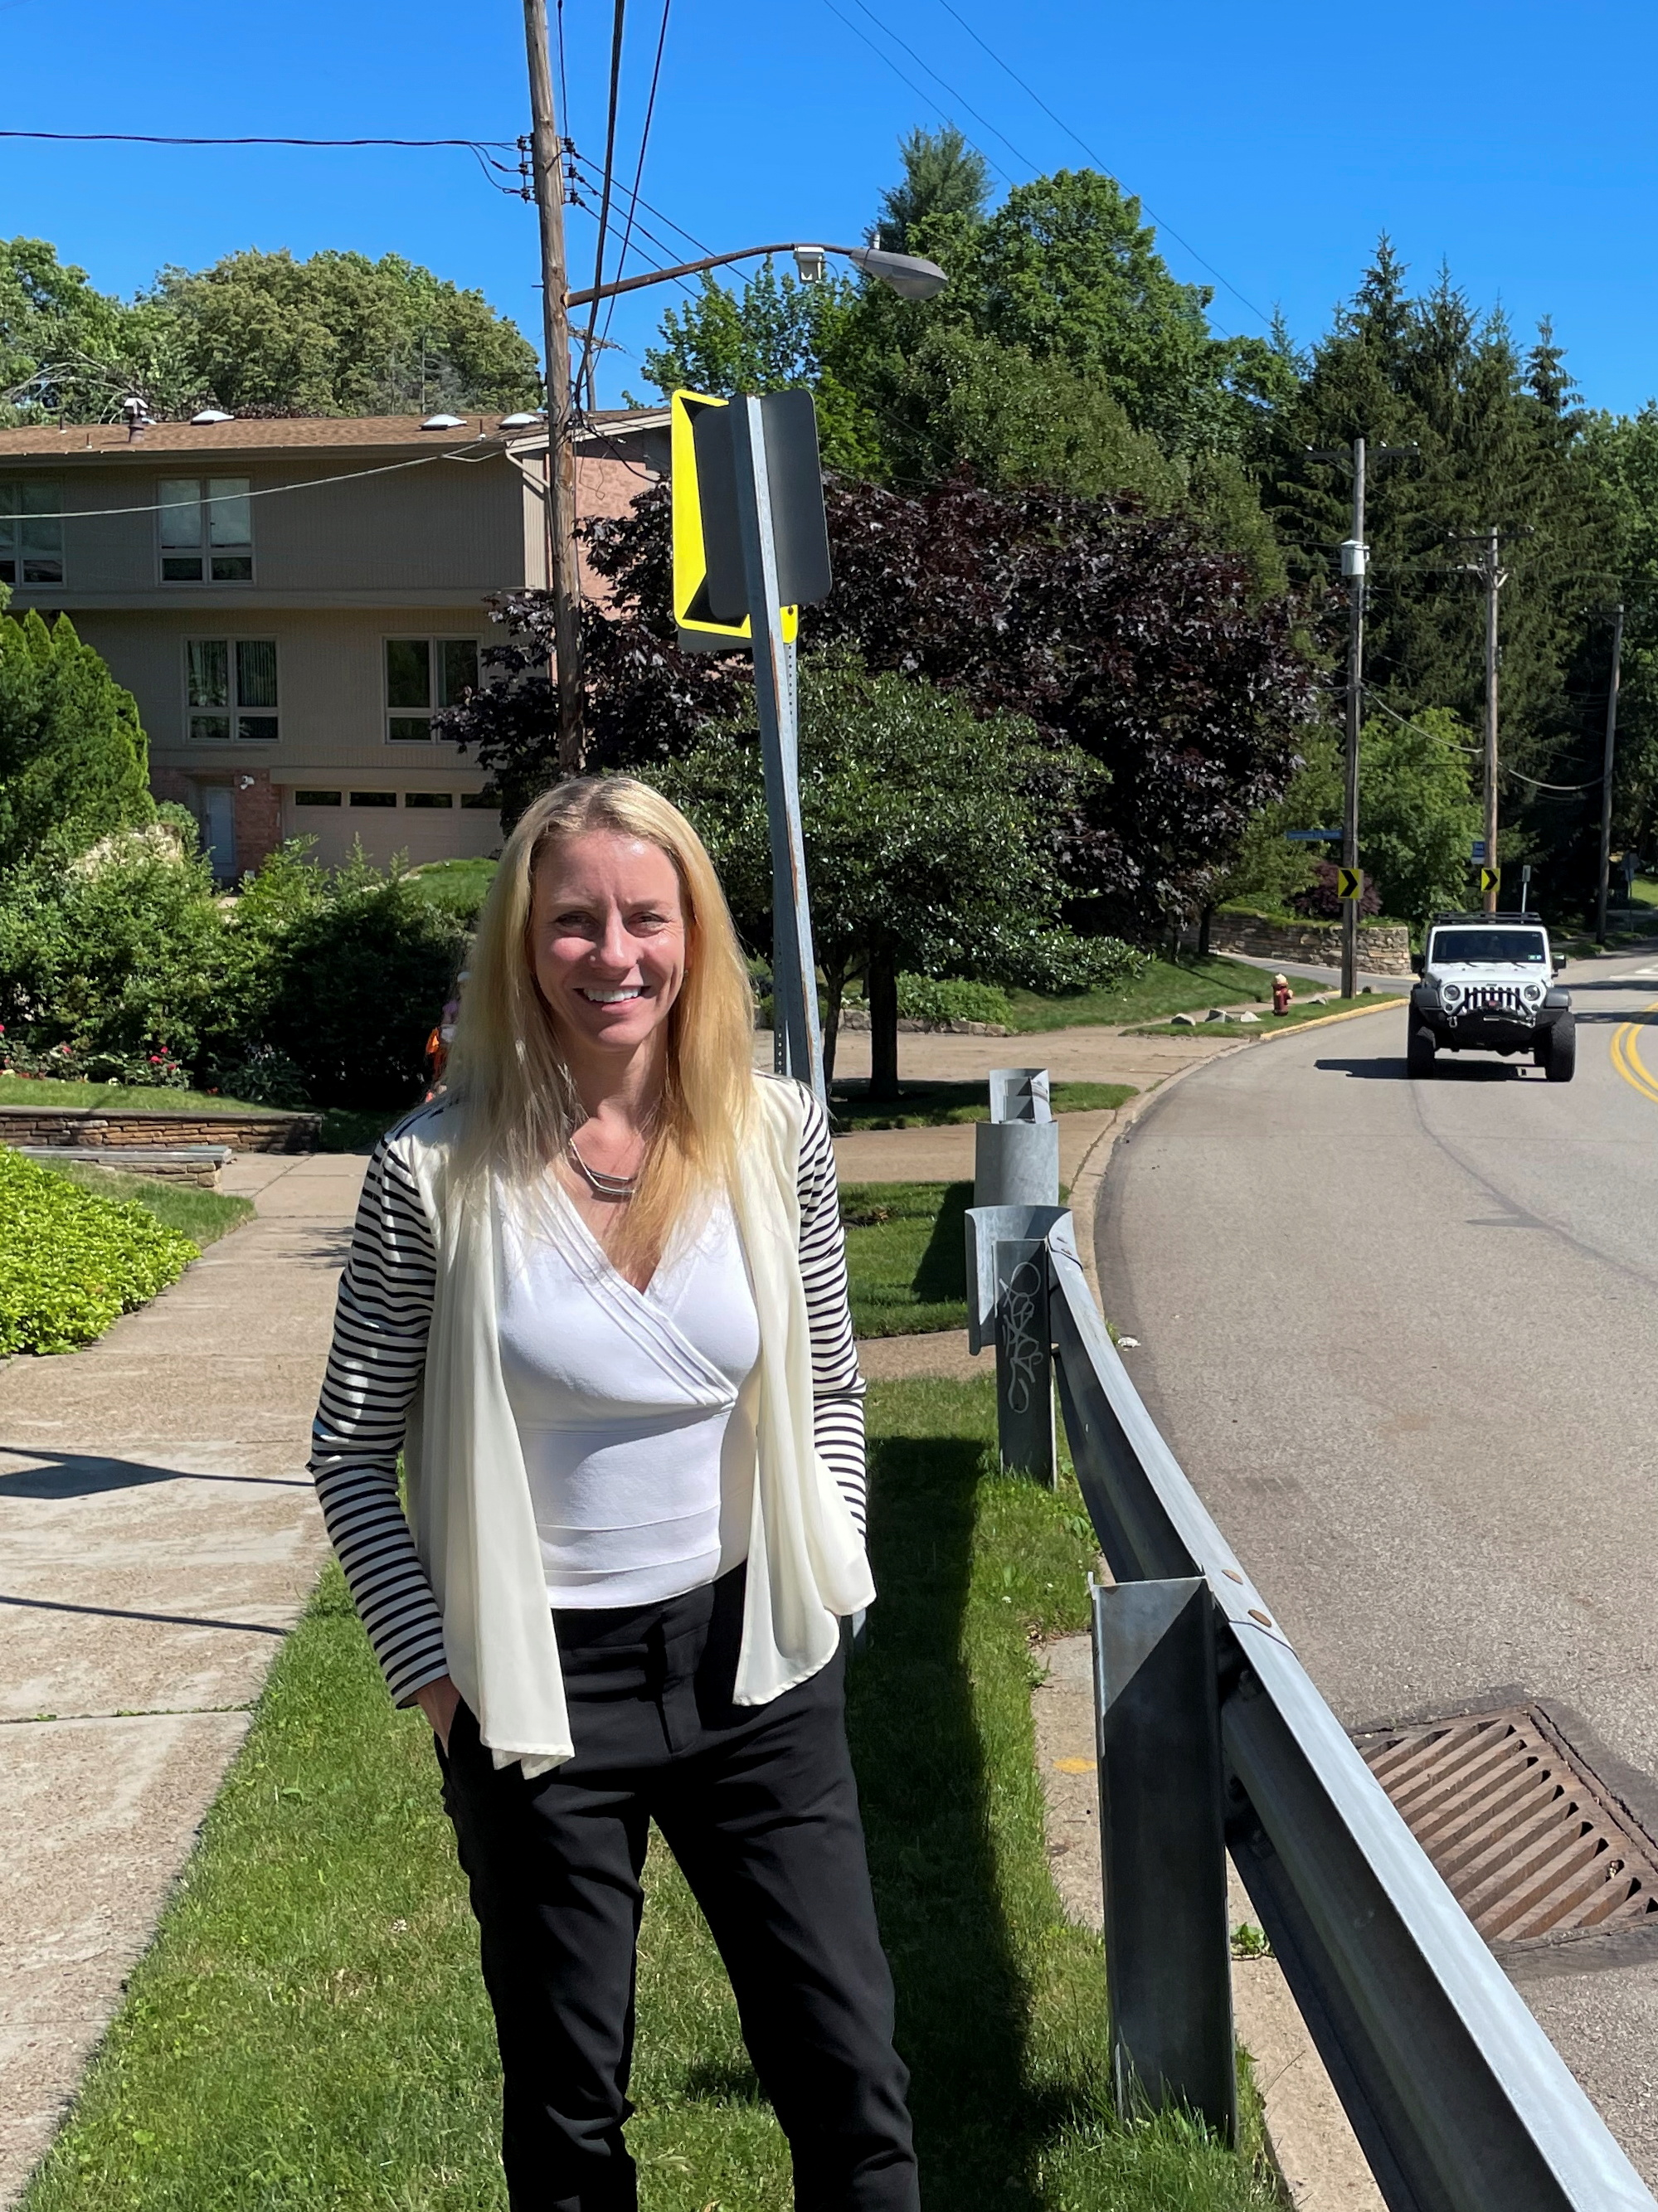 Pittsburgh City Council member Erika Strassburger stands near a protective guardrail on Shady Avenue in Pittsburgh, Pennsylvania, U.S. June 24, 2021. Picture taken June 24, 2021. REUTERS/Andy Sullivan